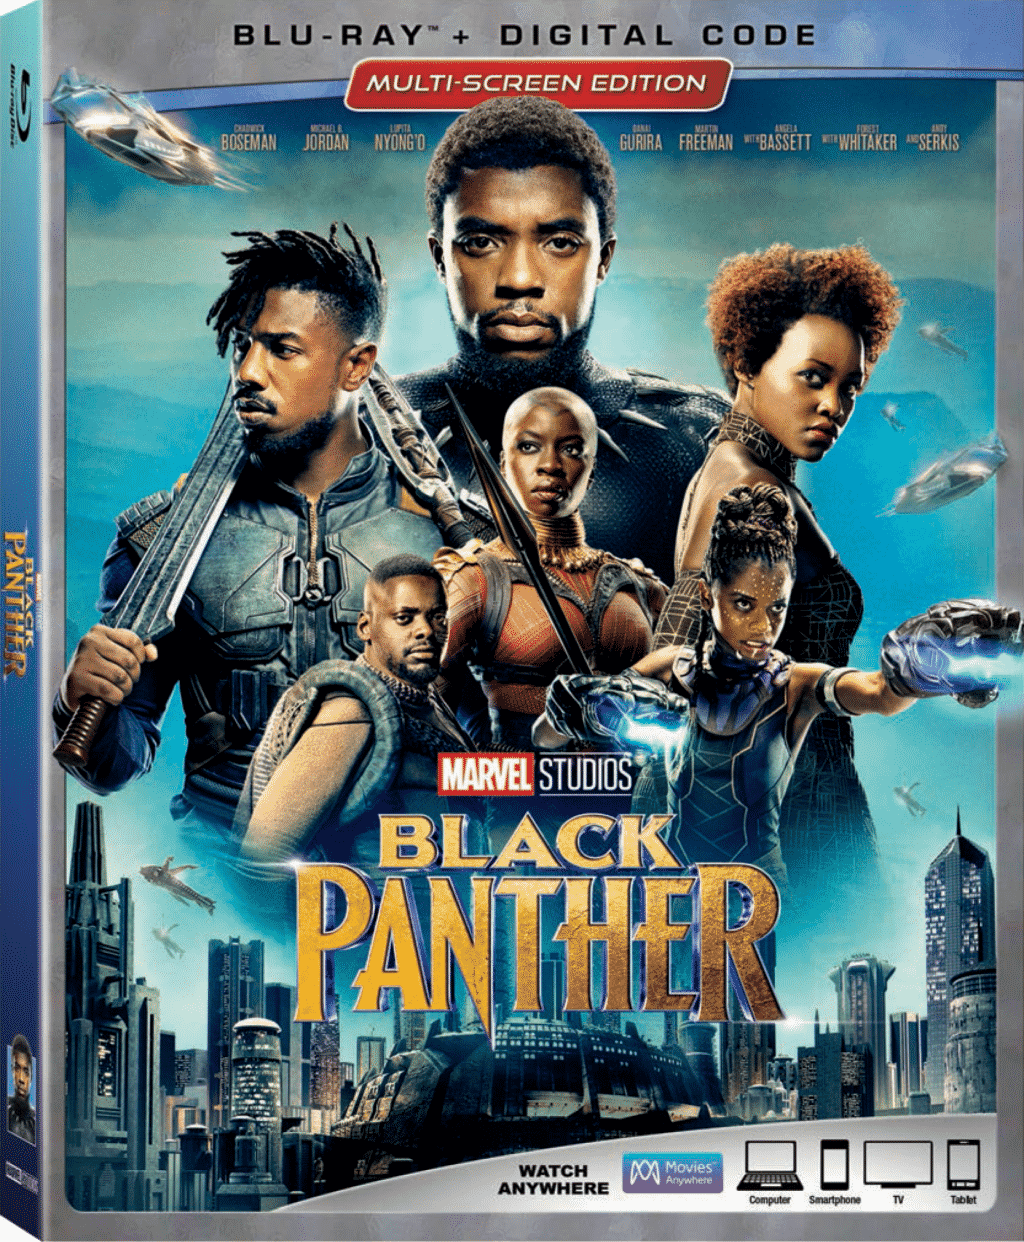 Inside Scoop Interview with Black Panther's Executive Producer Nate Moore